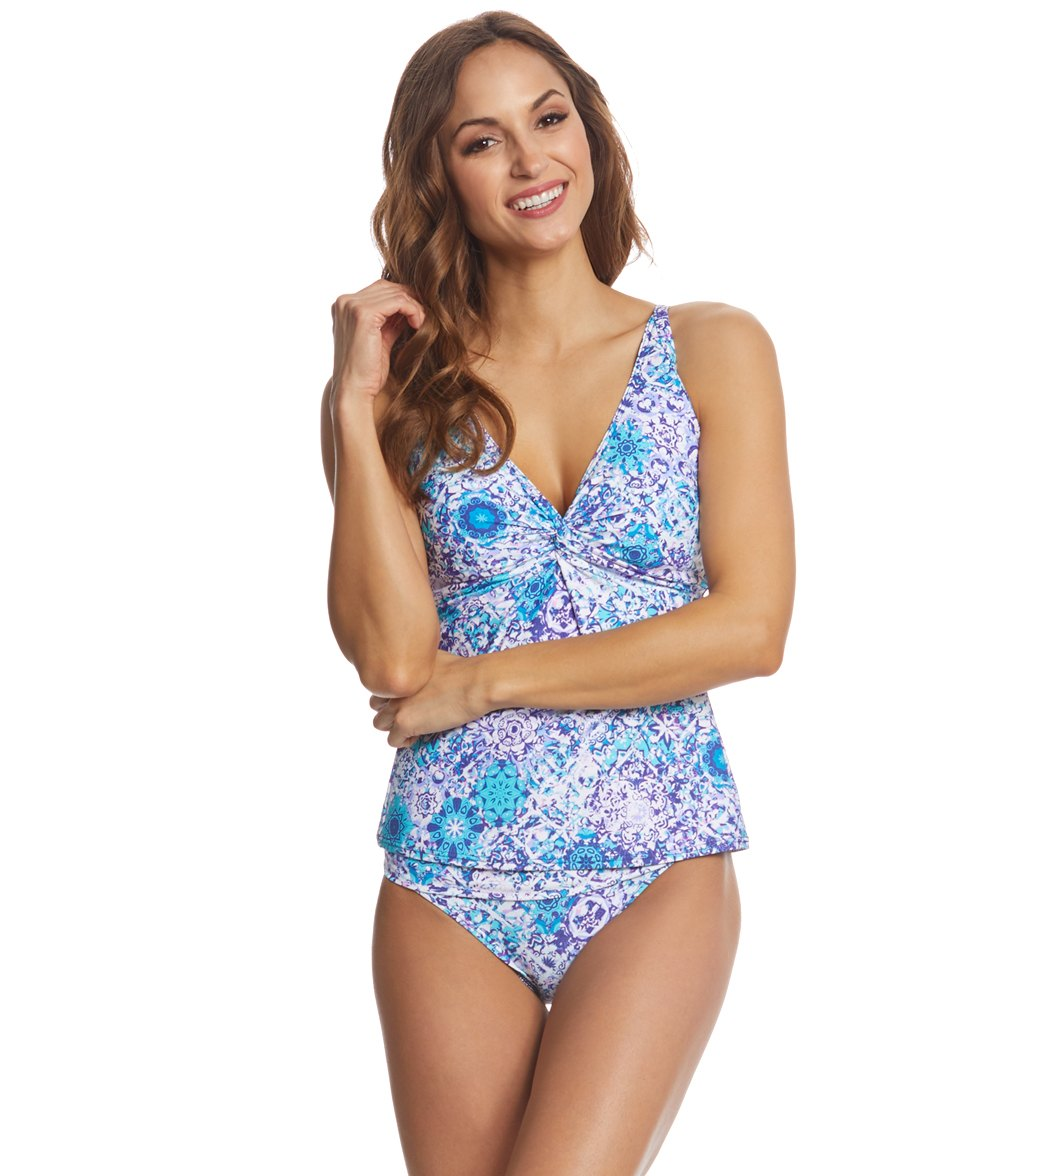 ed1e2df64bca8 Sunsets Odyssea Forever Tankini Top (D/DD Cup) at SwimOutlet.com ...